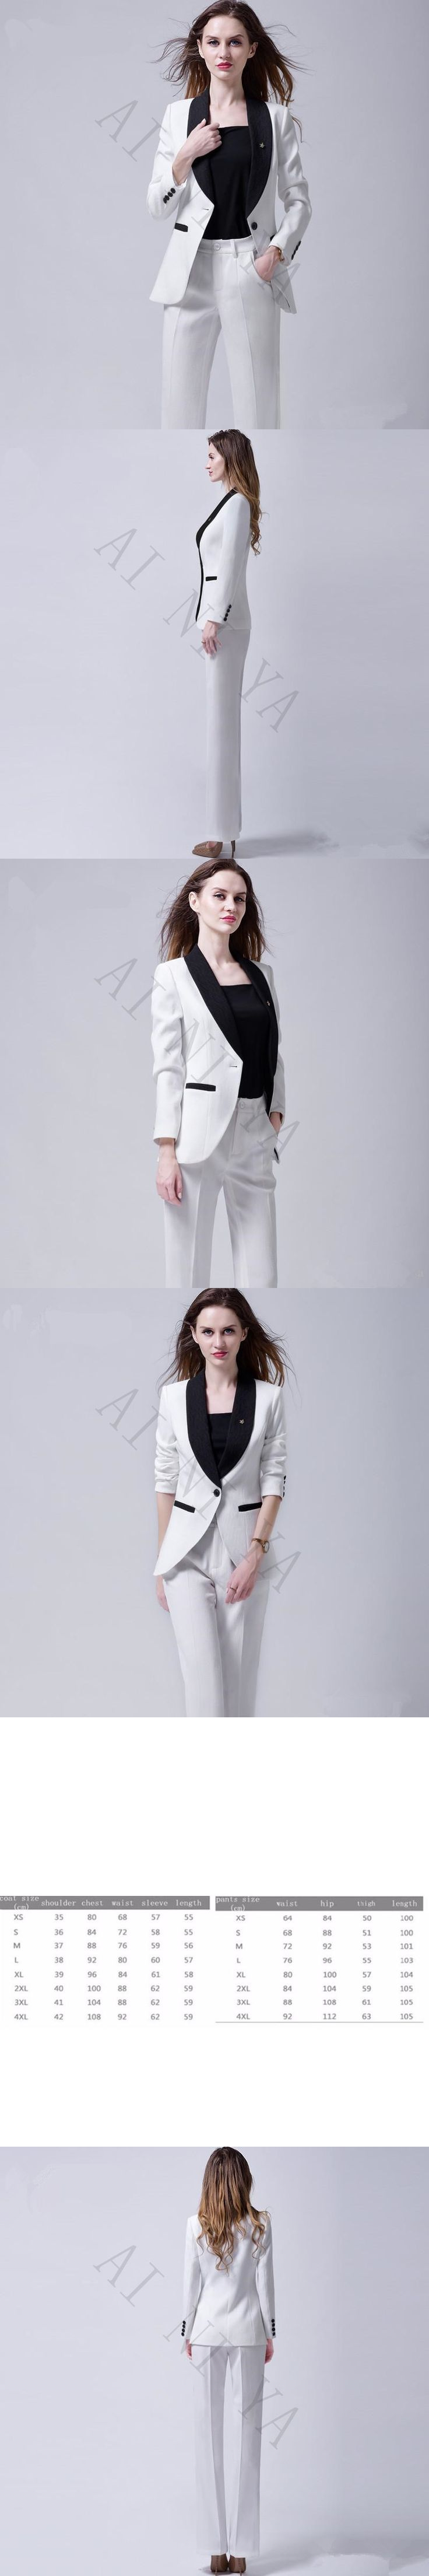 Women 2 Pieces Sets Womens Business Suits Formal OL Long Sleeve Ladies Trouser Suit Female Office Uniform Single Breasted